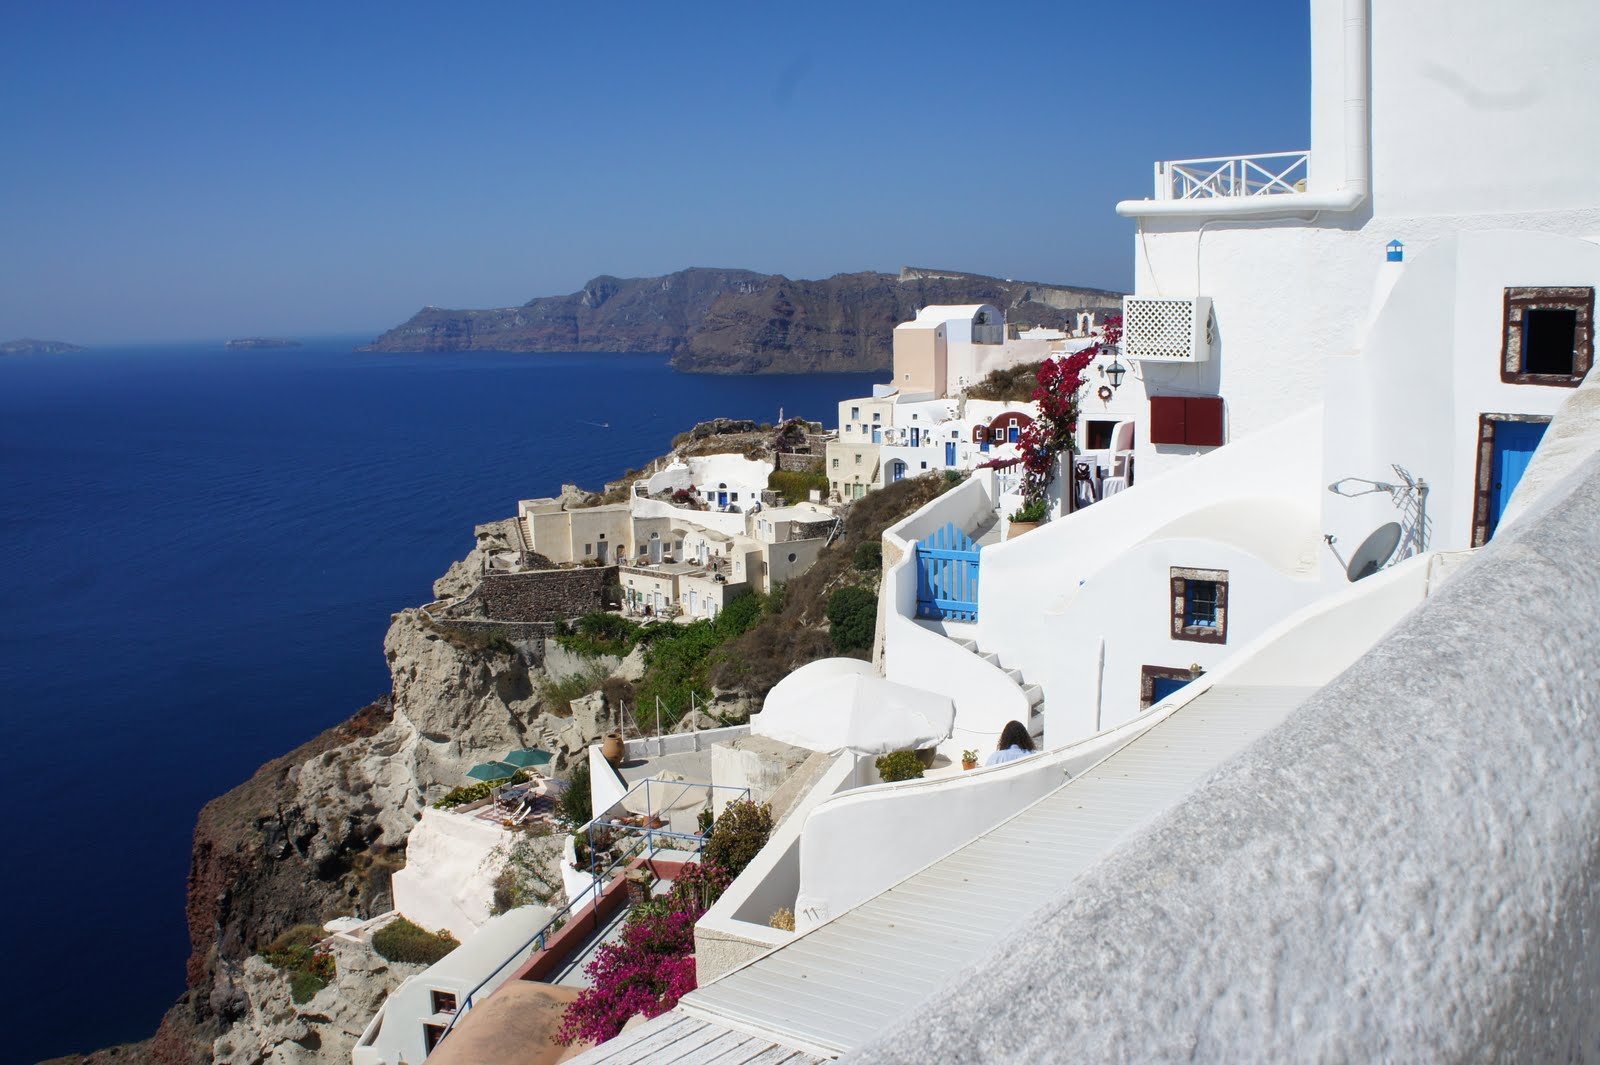 Travel Companies For Short Tours To Greece And Italy